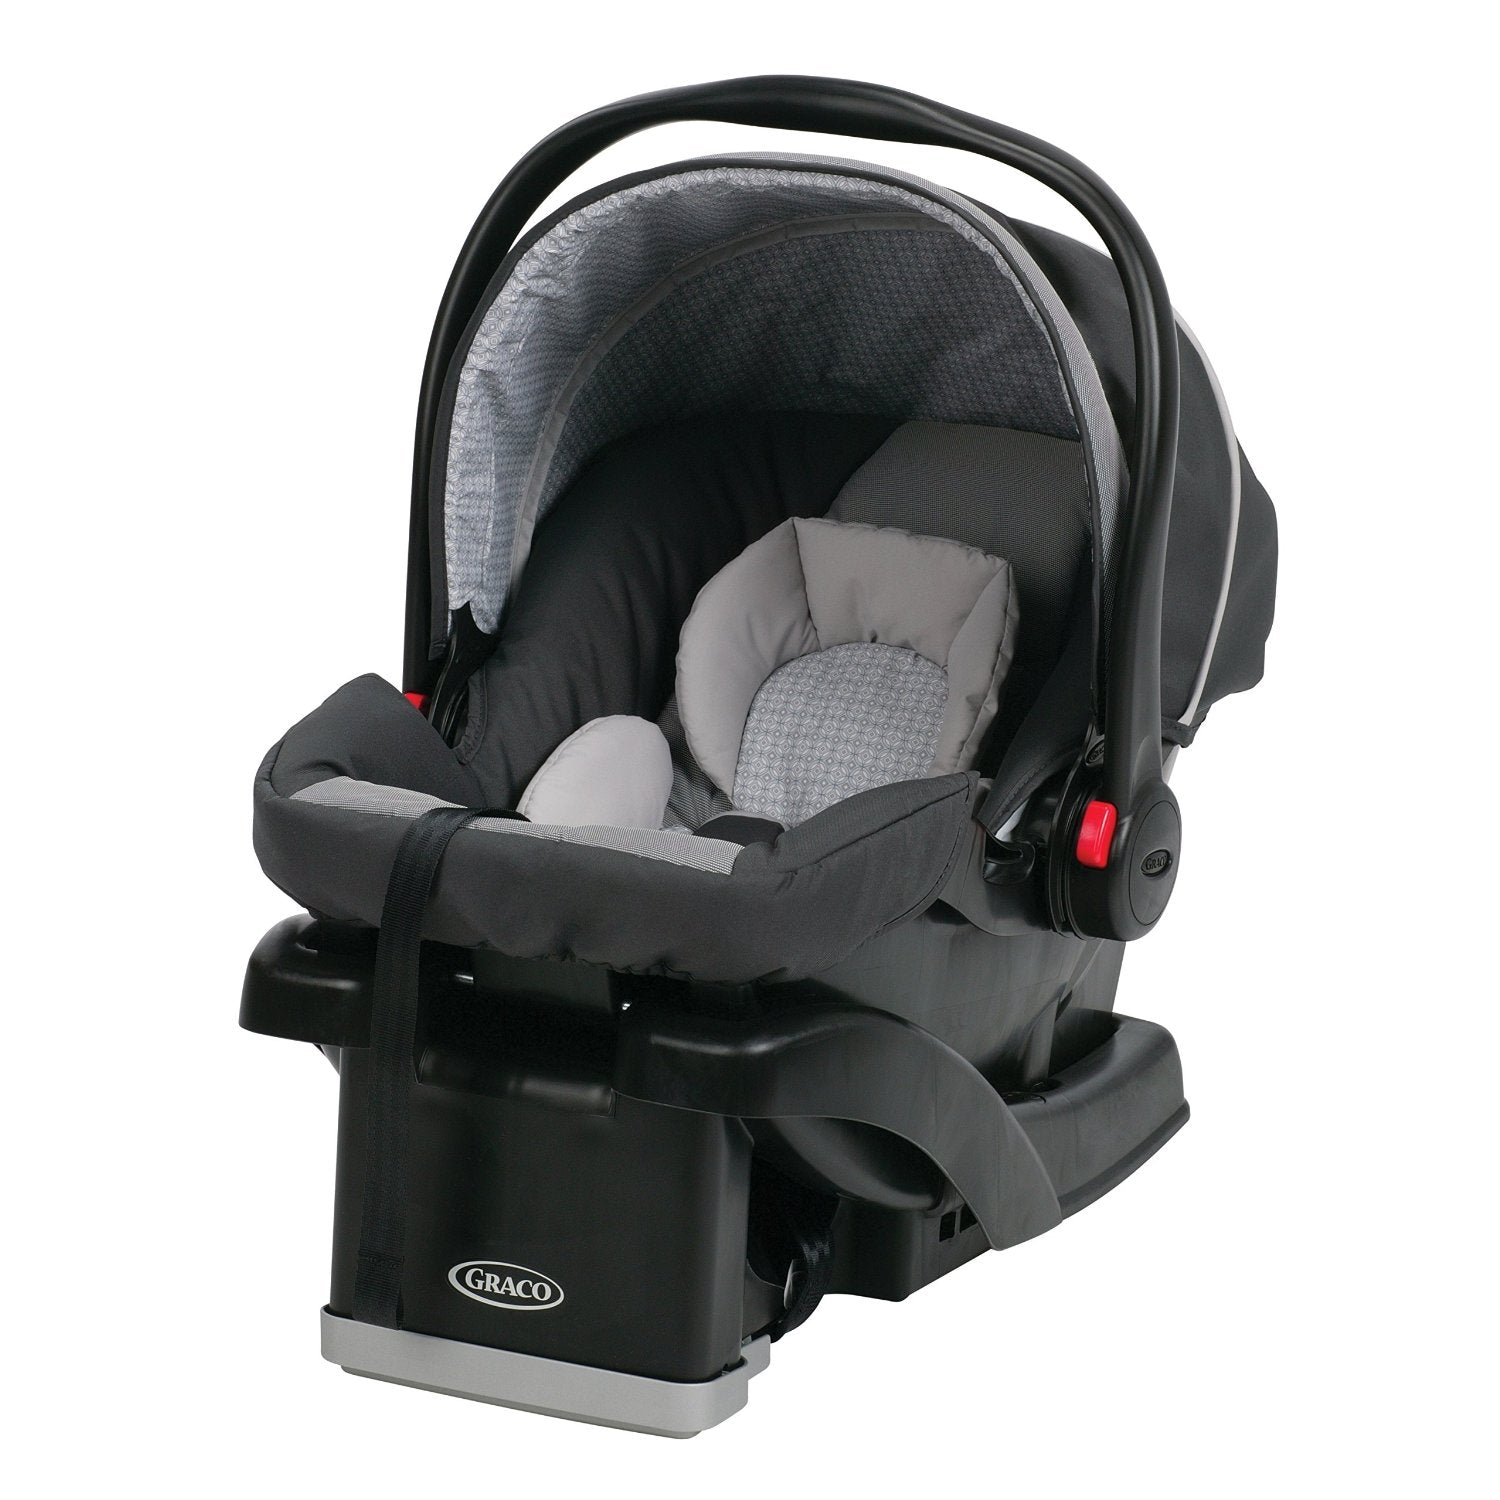 Car Seat, Select the Ideal Car Seat for Your Infant